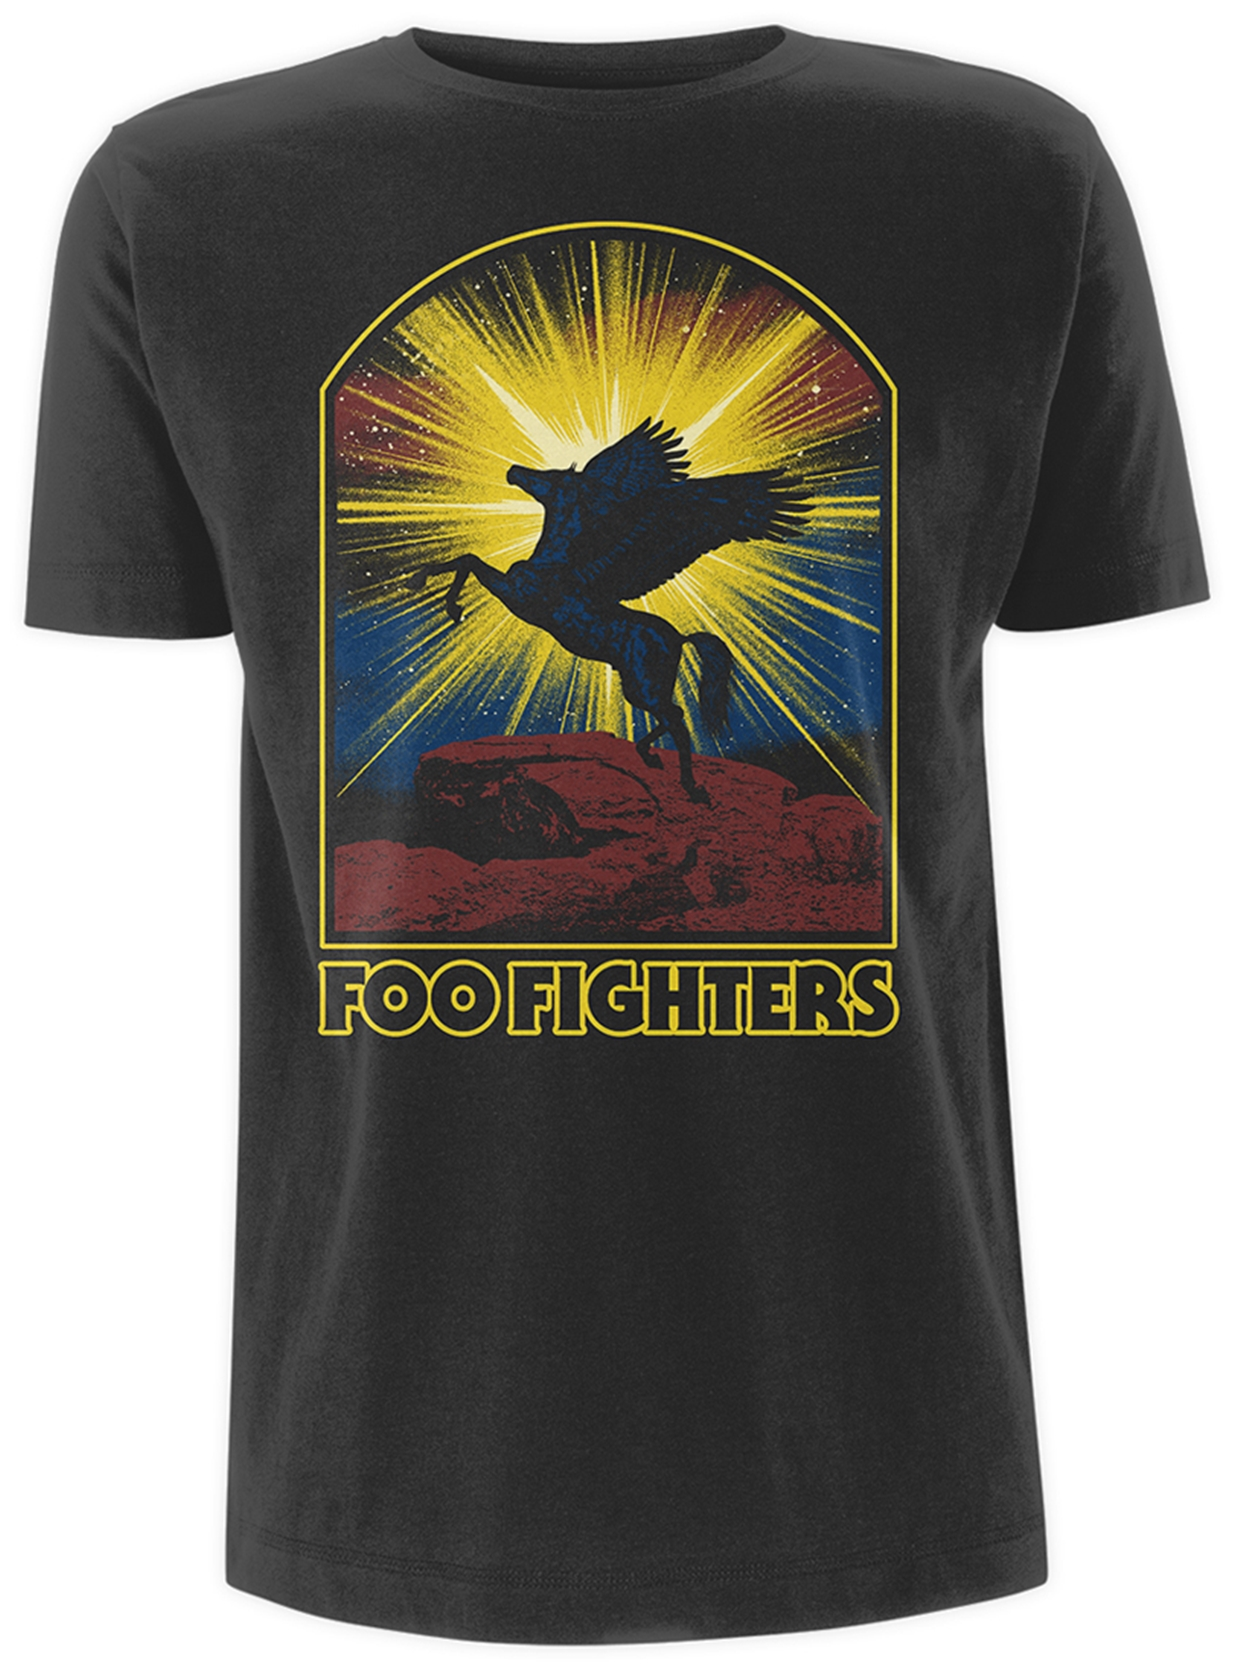 Foo Fighters Winged Horse